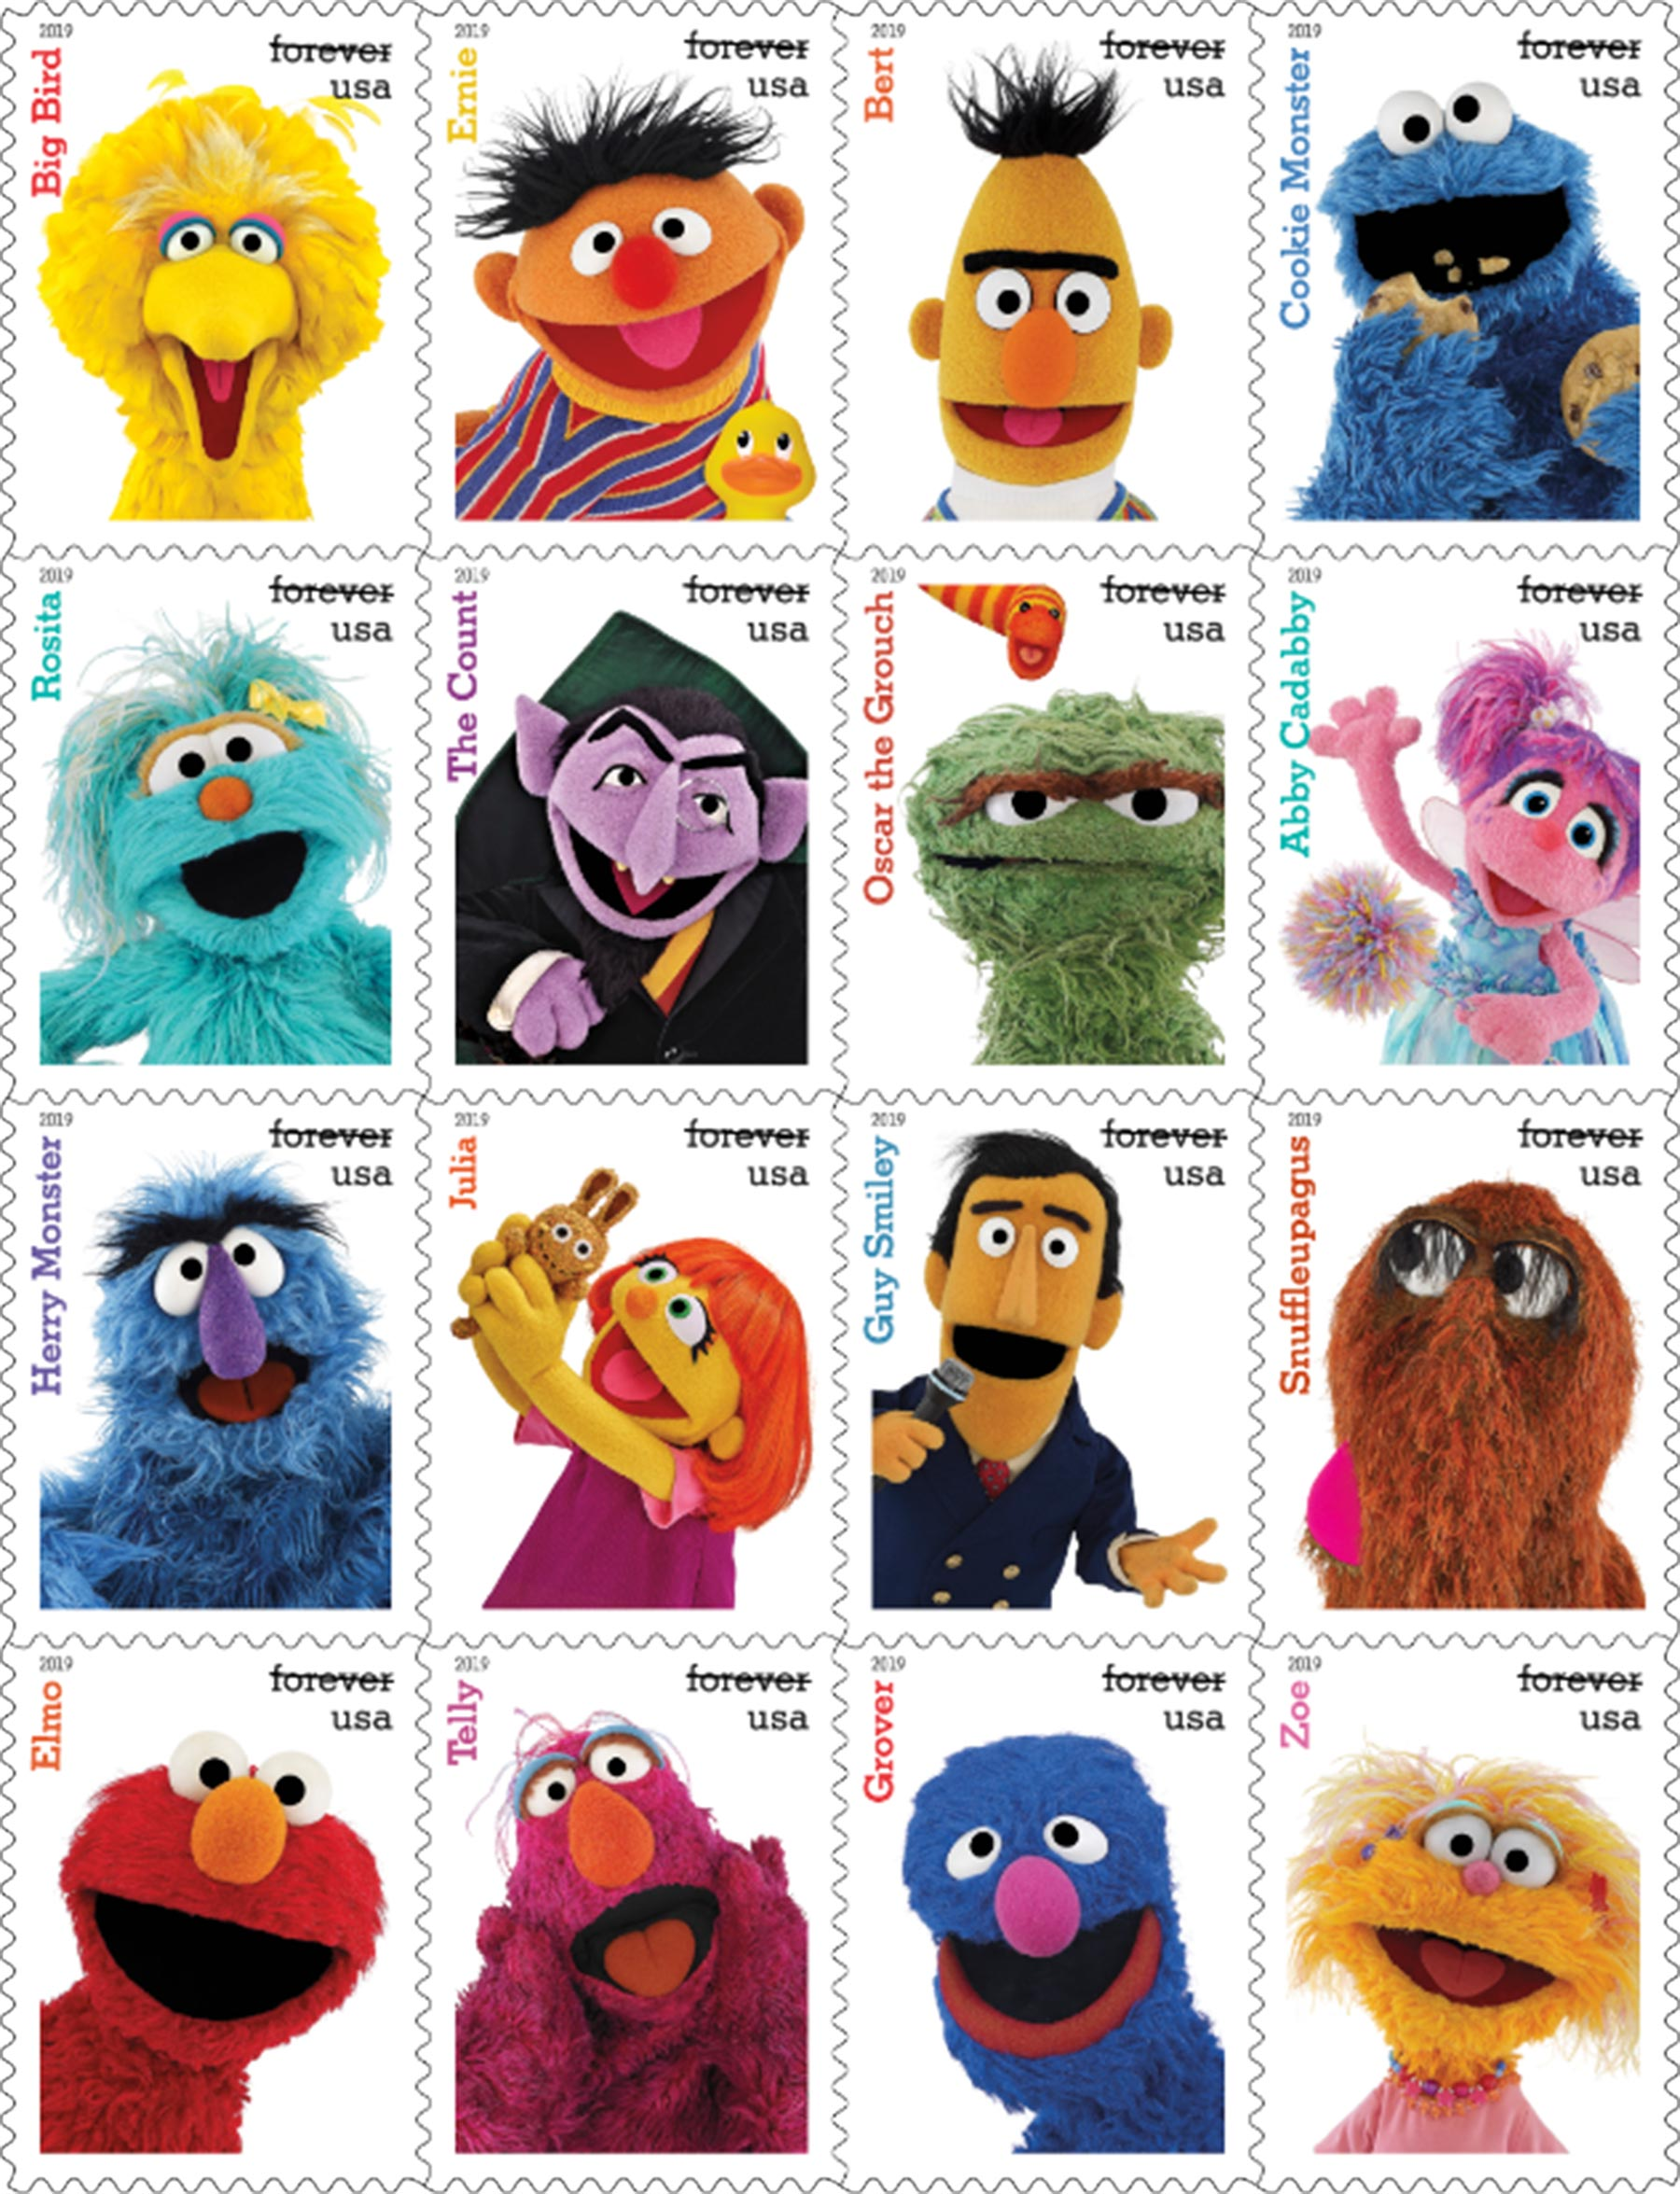 USPS to Release Sesame Street Stamps for Series' 50th Anniversary — See the 16 Familiar Faces